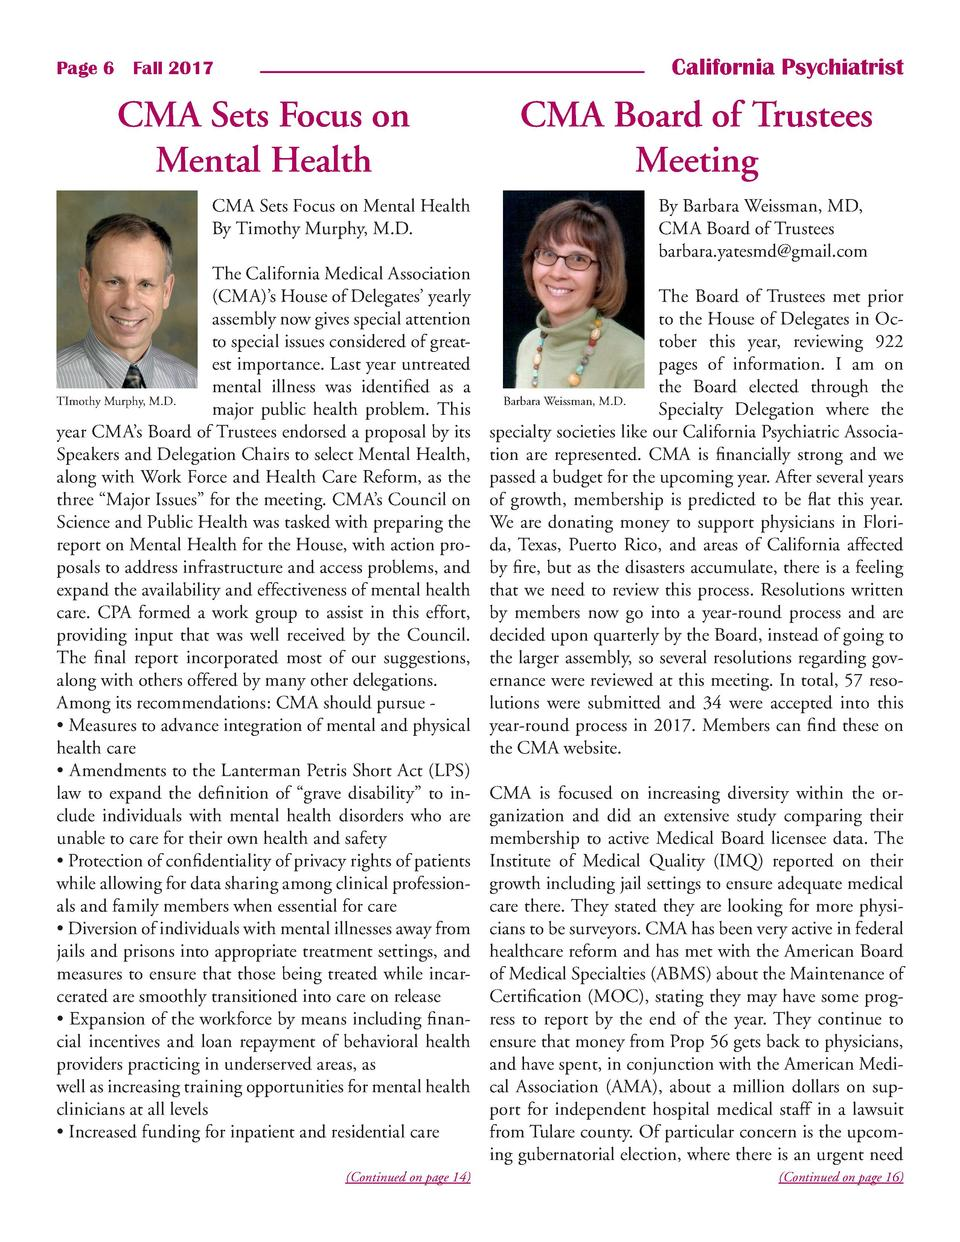 California Psychiatrist  Page 6    Fall 2017  CMA Sets Focus on Mental Health CMA Sets Focus on Mental Health By Timothy M...